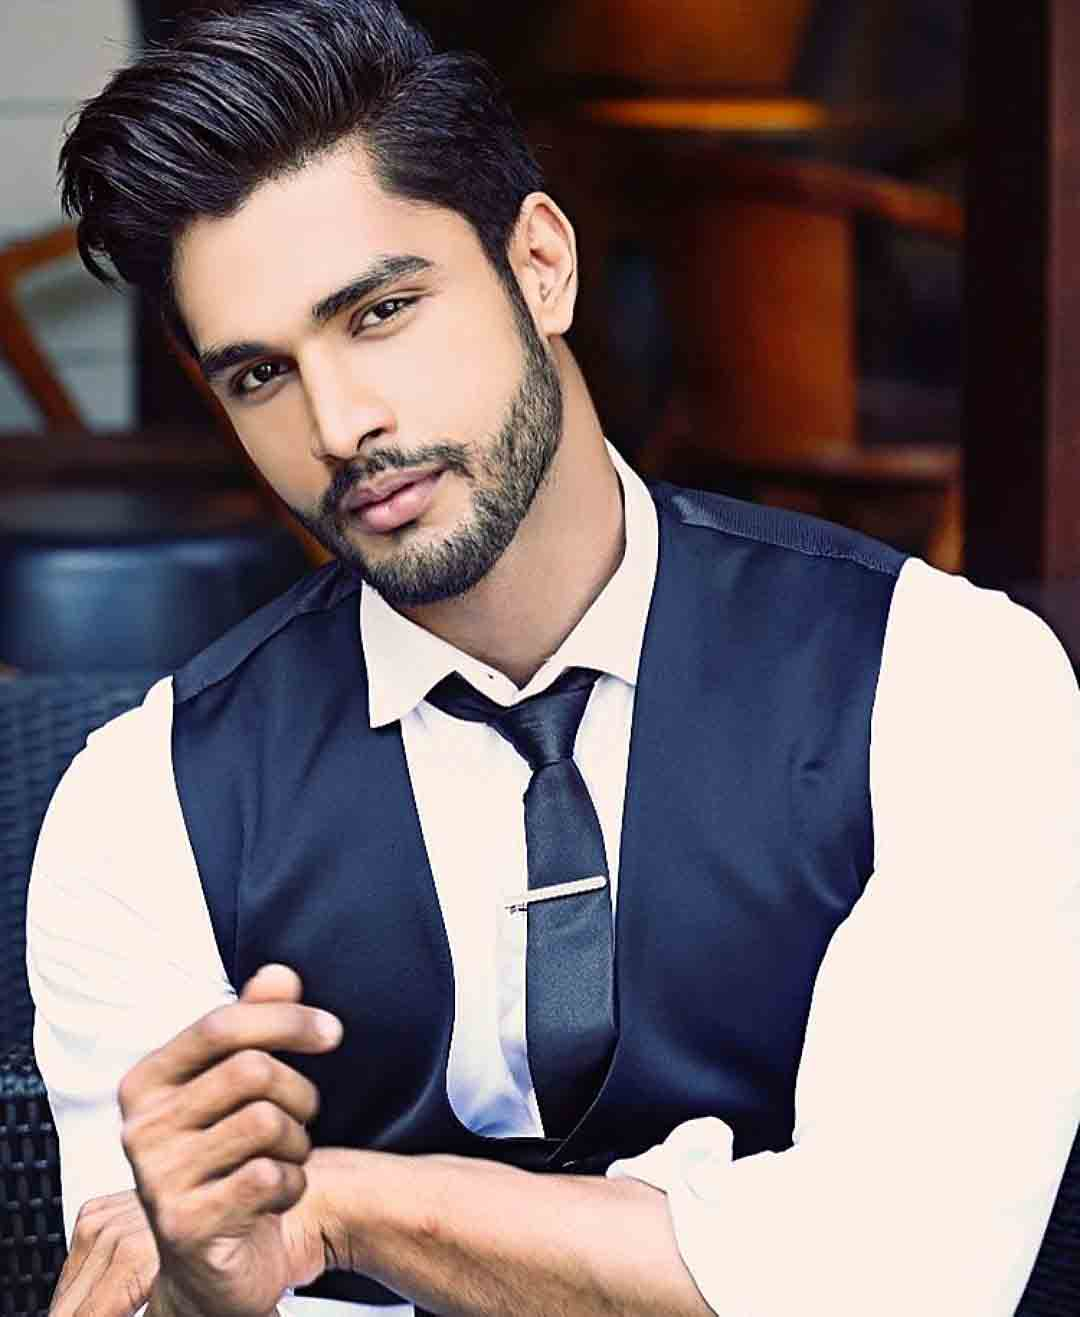 Indian men office outfit ideas in 2020